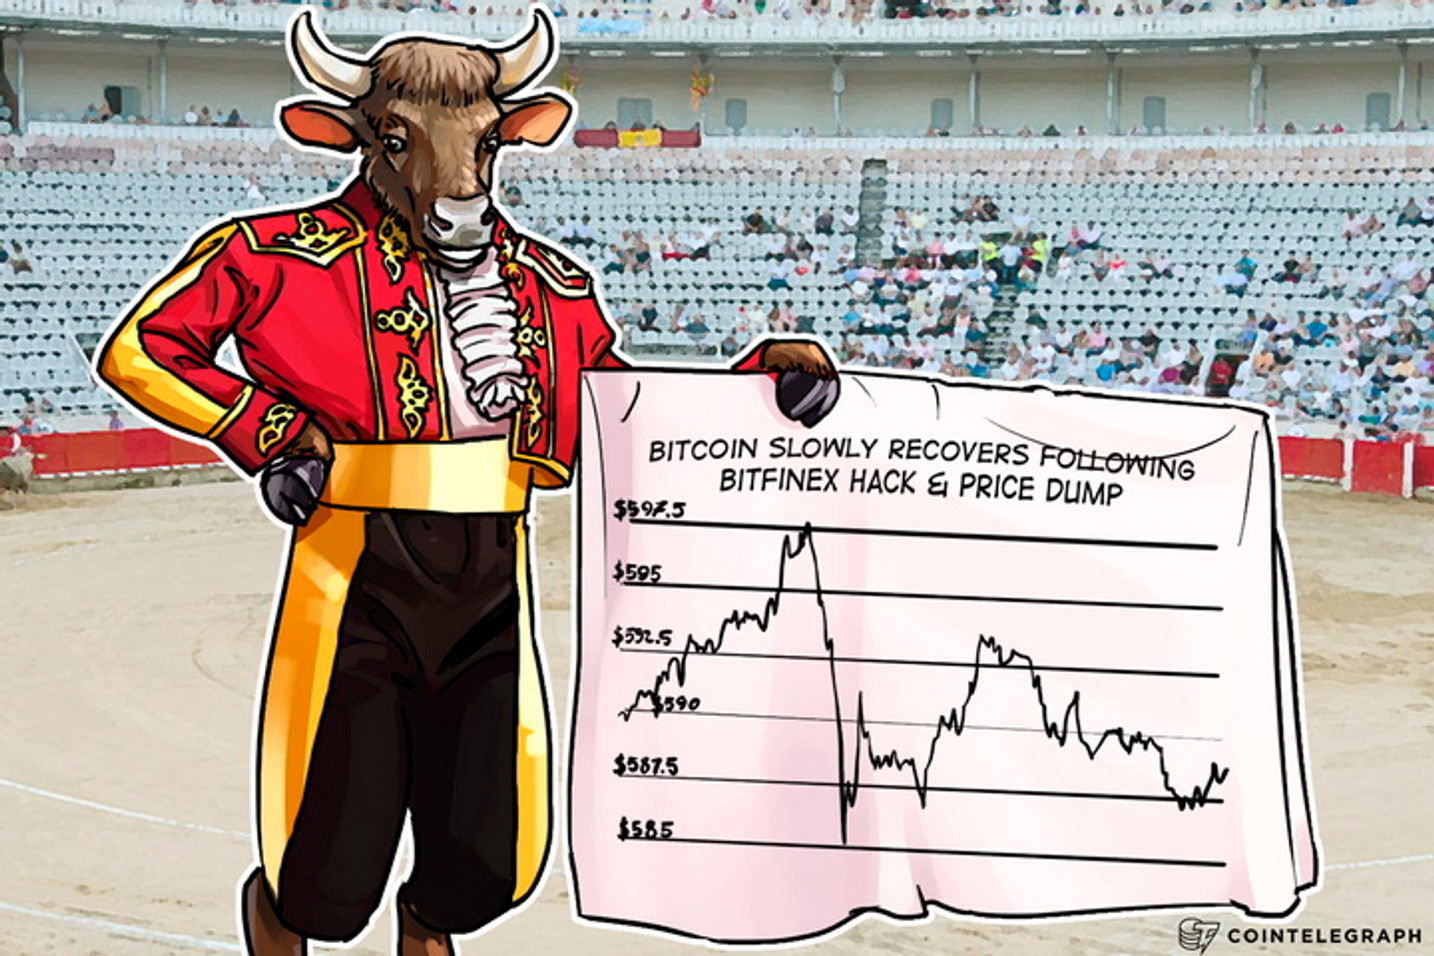 Bitcoin Slowly Recovers Following Bitfinex Hack and Price Dump